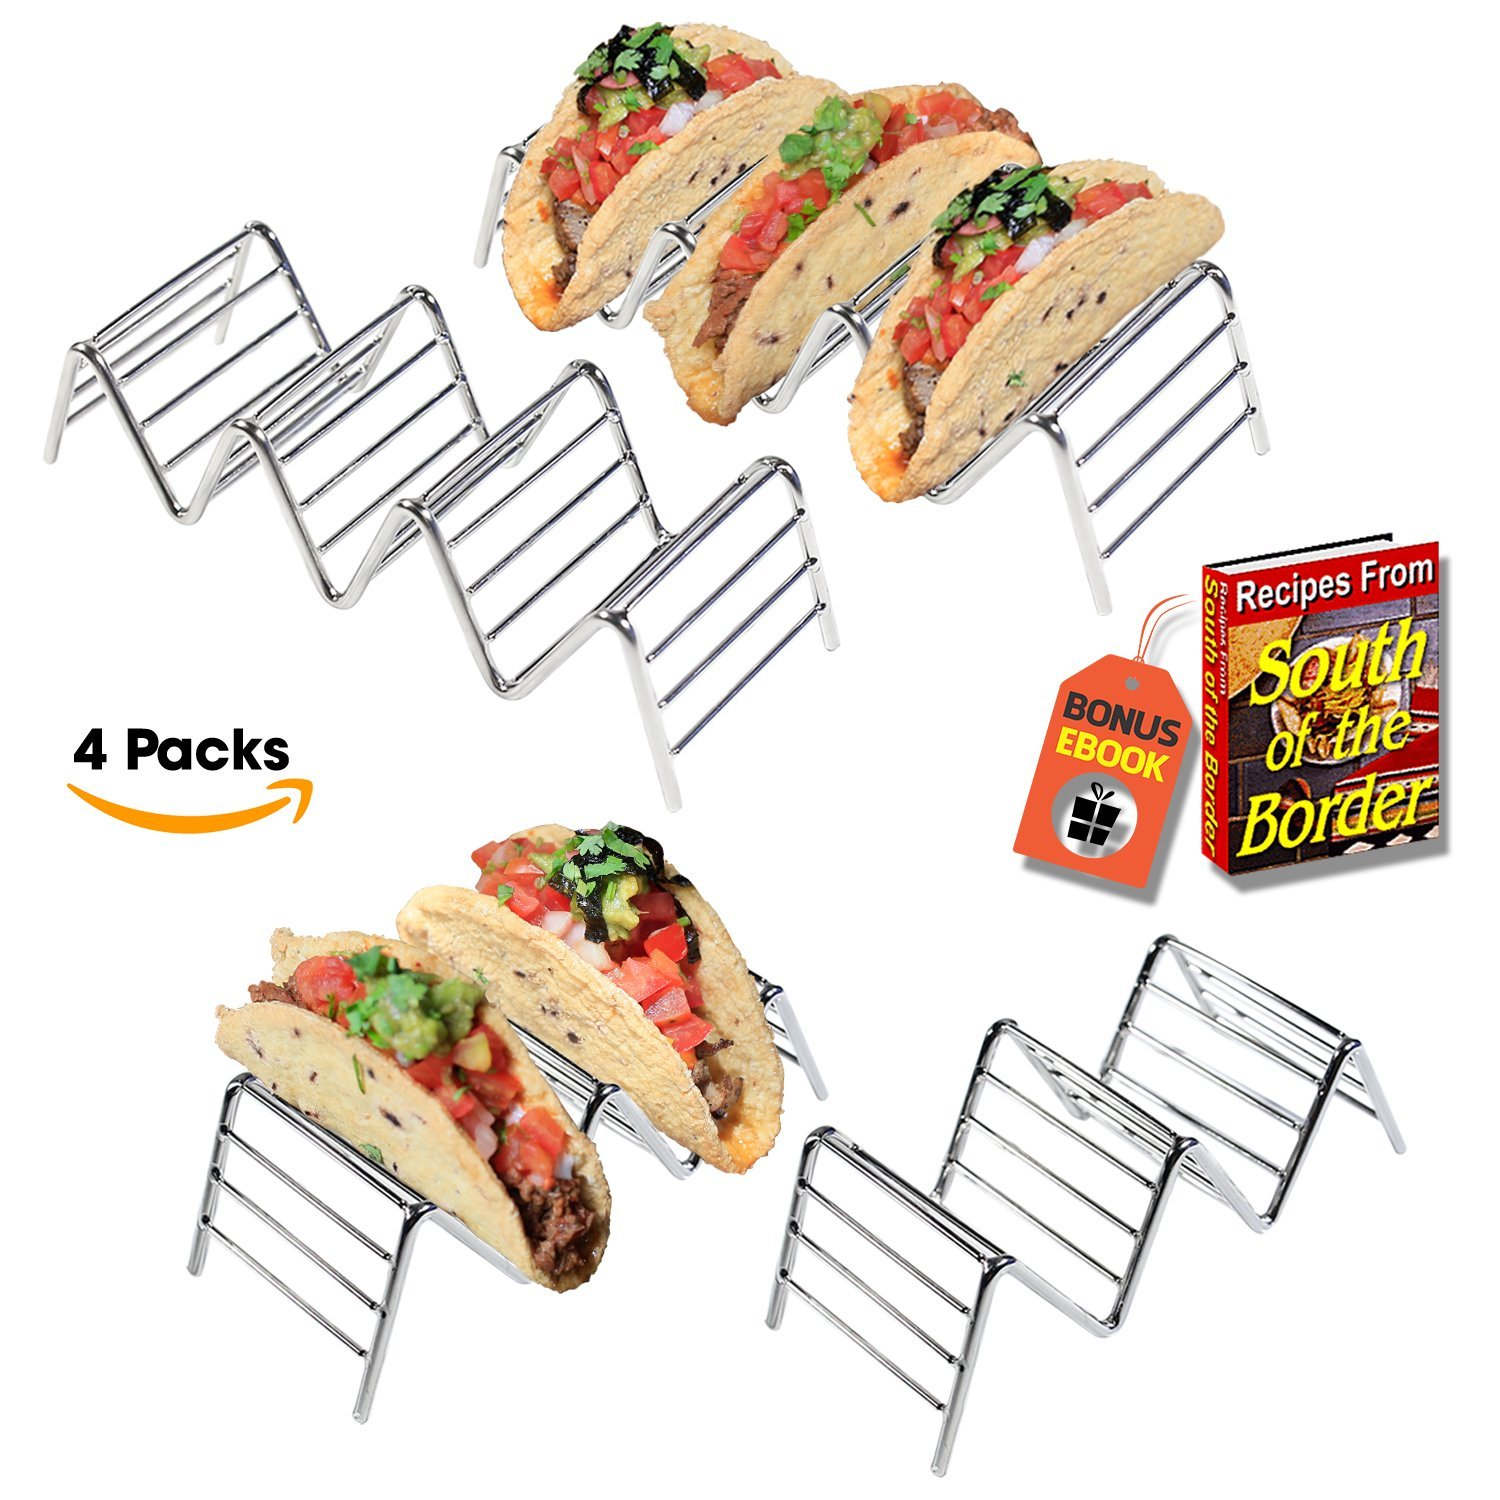 Premium Quality Stainless Steel Taco Holder Stand - Taco Rack - Taco Truck Tray Hold Up To 14 Soft or Hard Taco Shells - Dishwasher, Oven Safe For Baking or Reheating - Set of 4 Packs + BONUS eBook